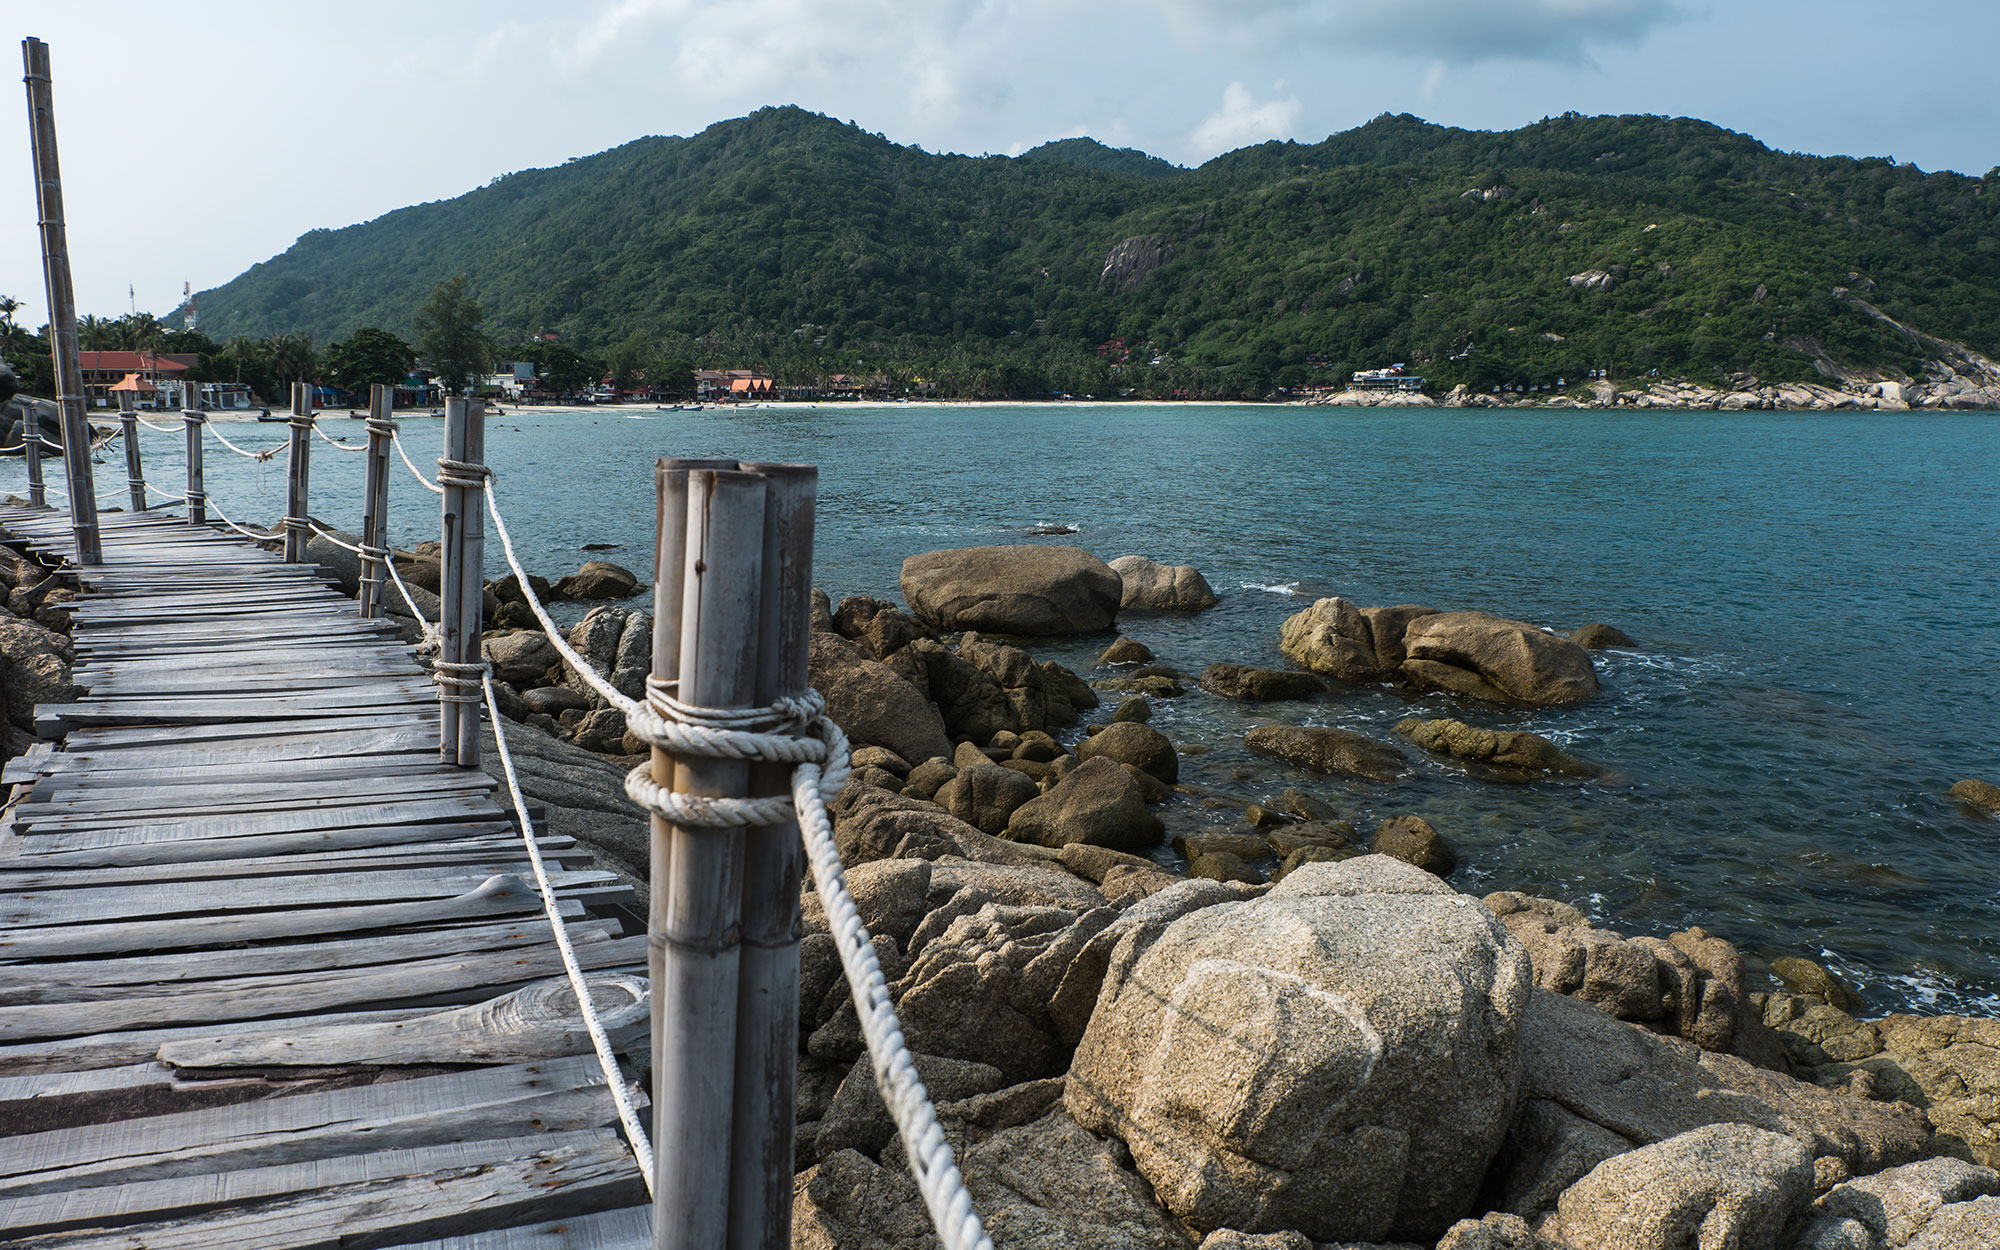 Wooden Boardwalk at Haad Rin, Koh Pha Ngan